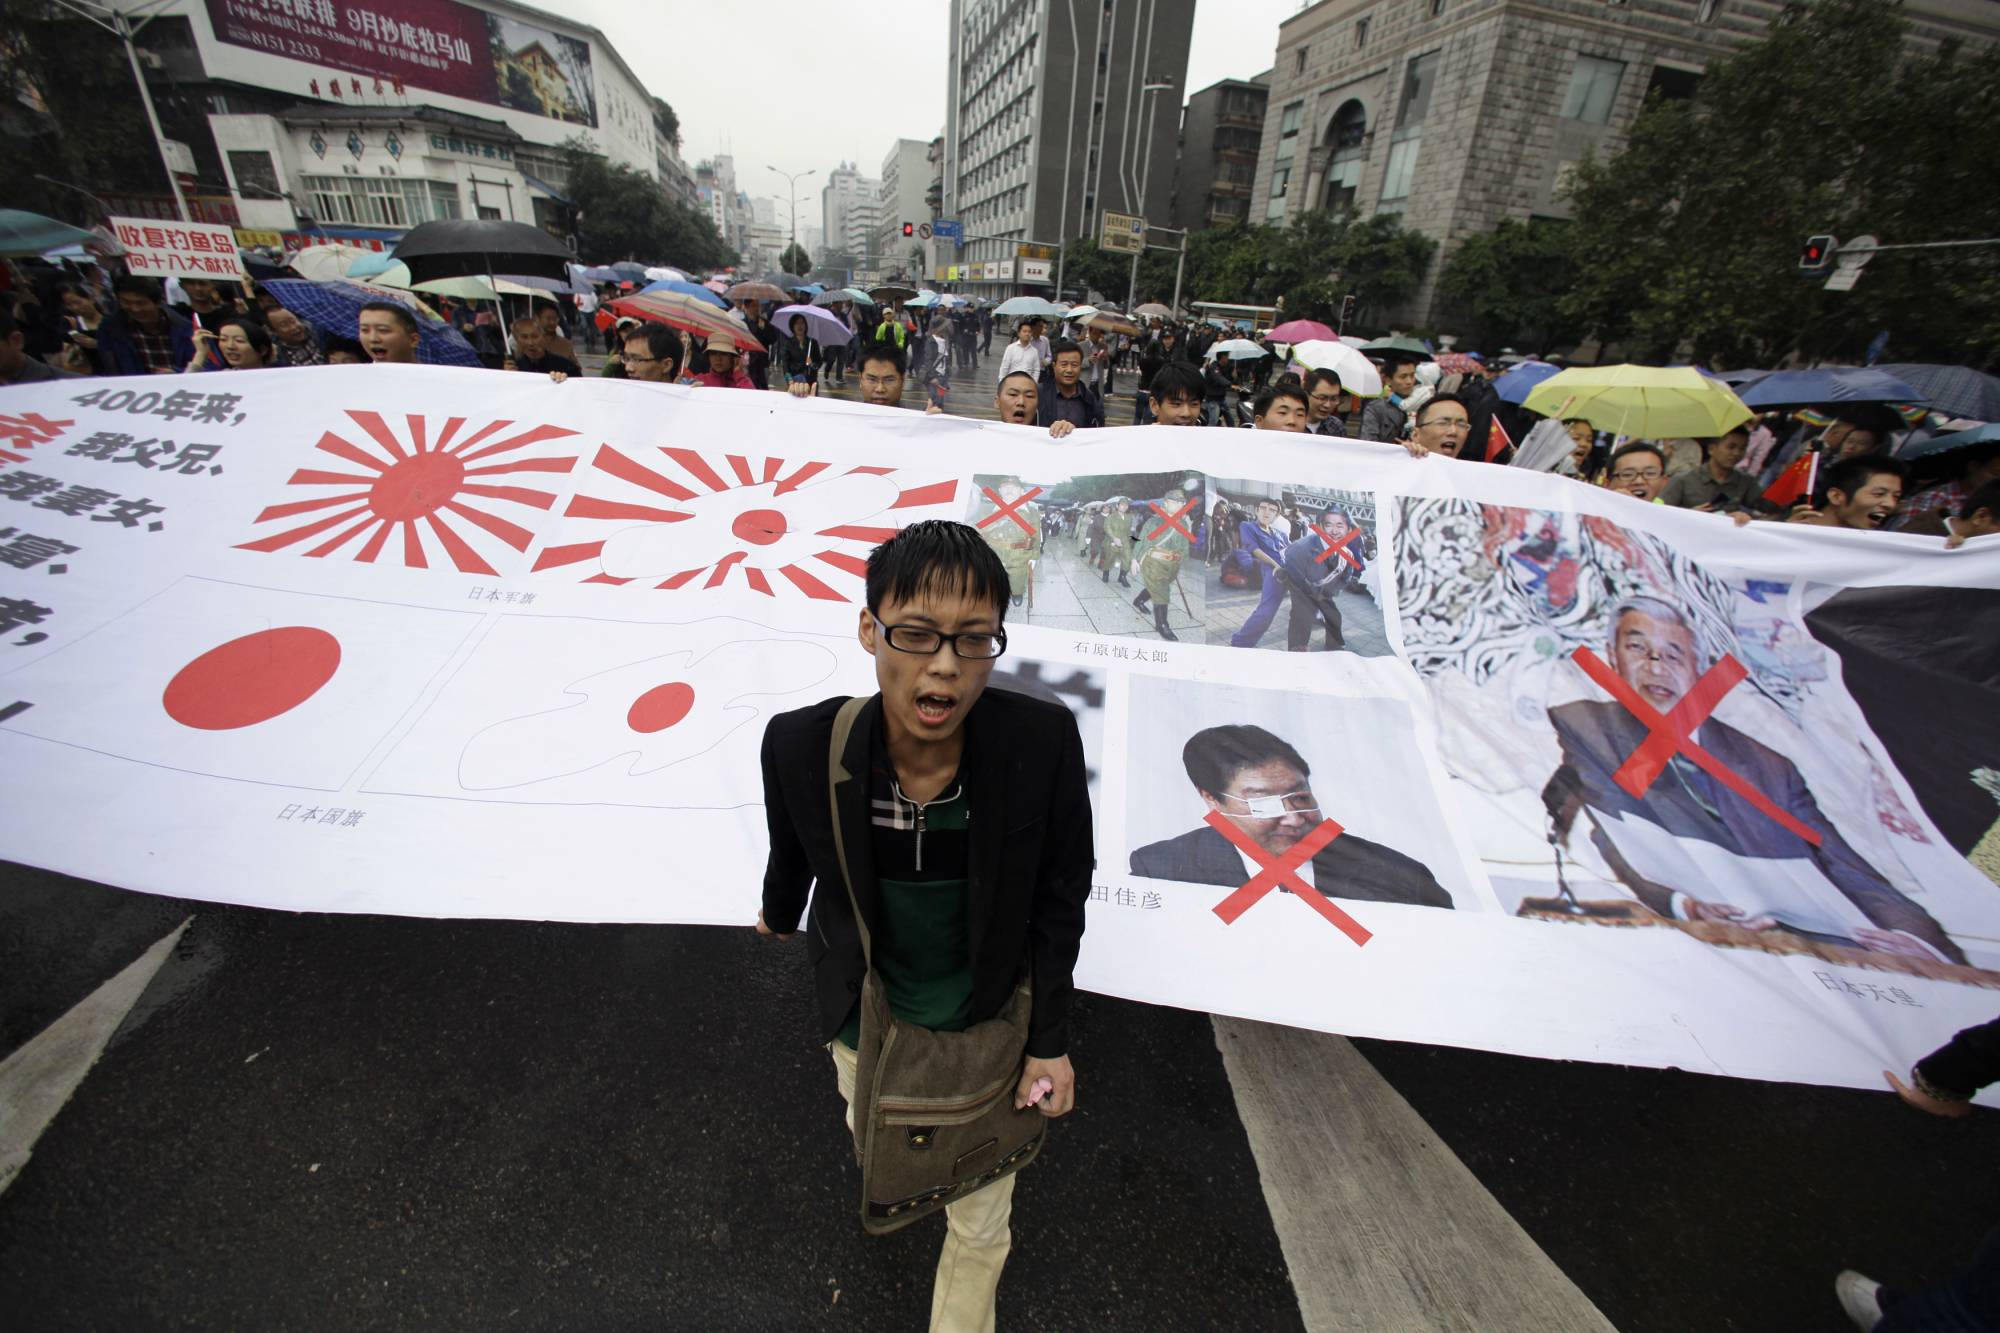 Demonstrators protest against Japan's decision to purchase the disputed Senkaku Islands, called  Diaoyu in China, in the Chinese city of Chengdu in September 2012.    | REUTERS